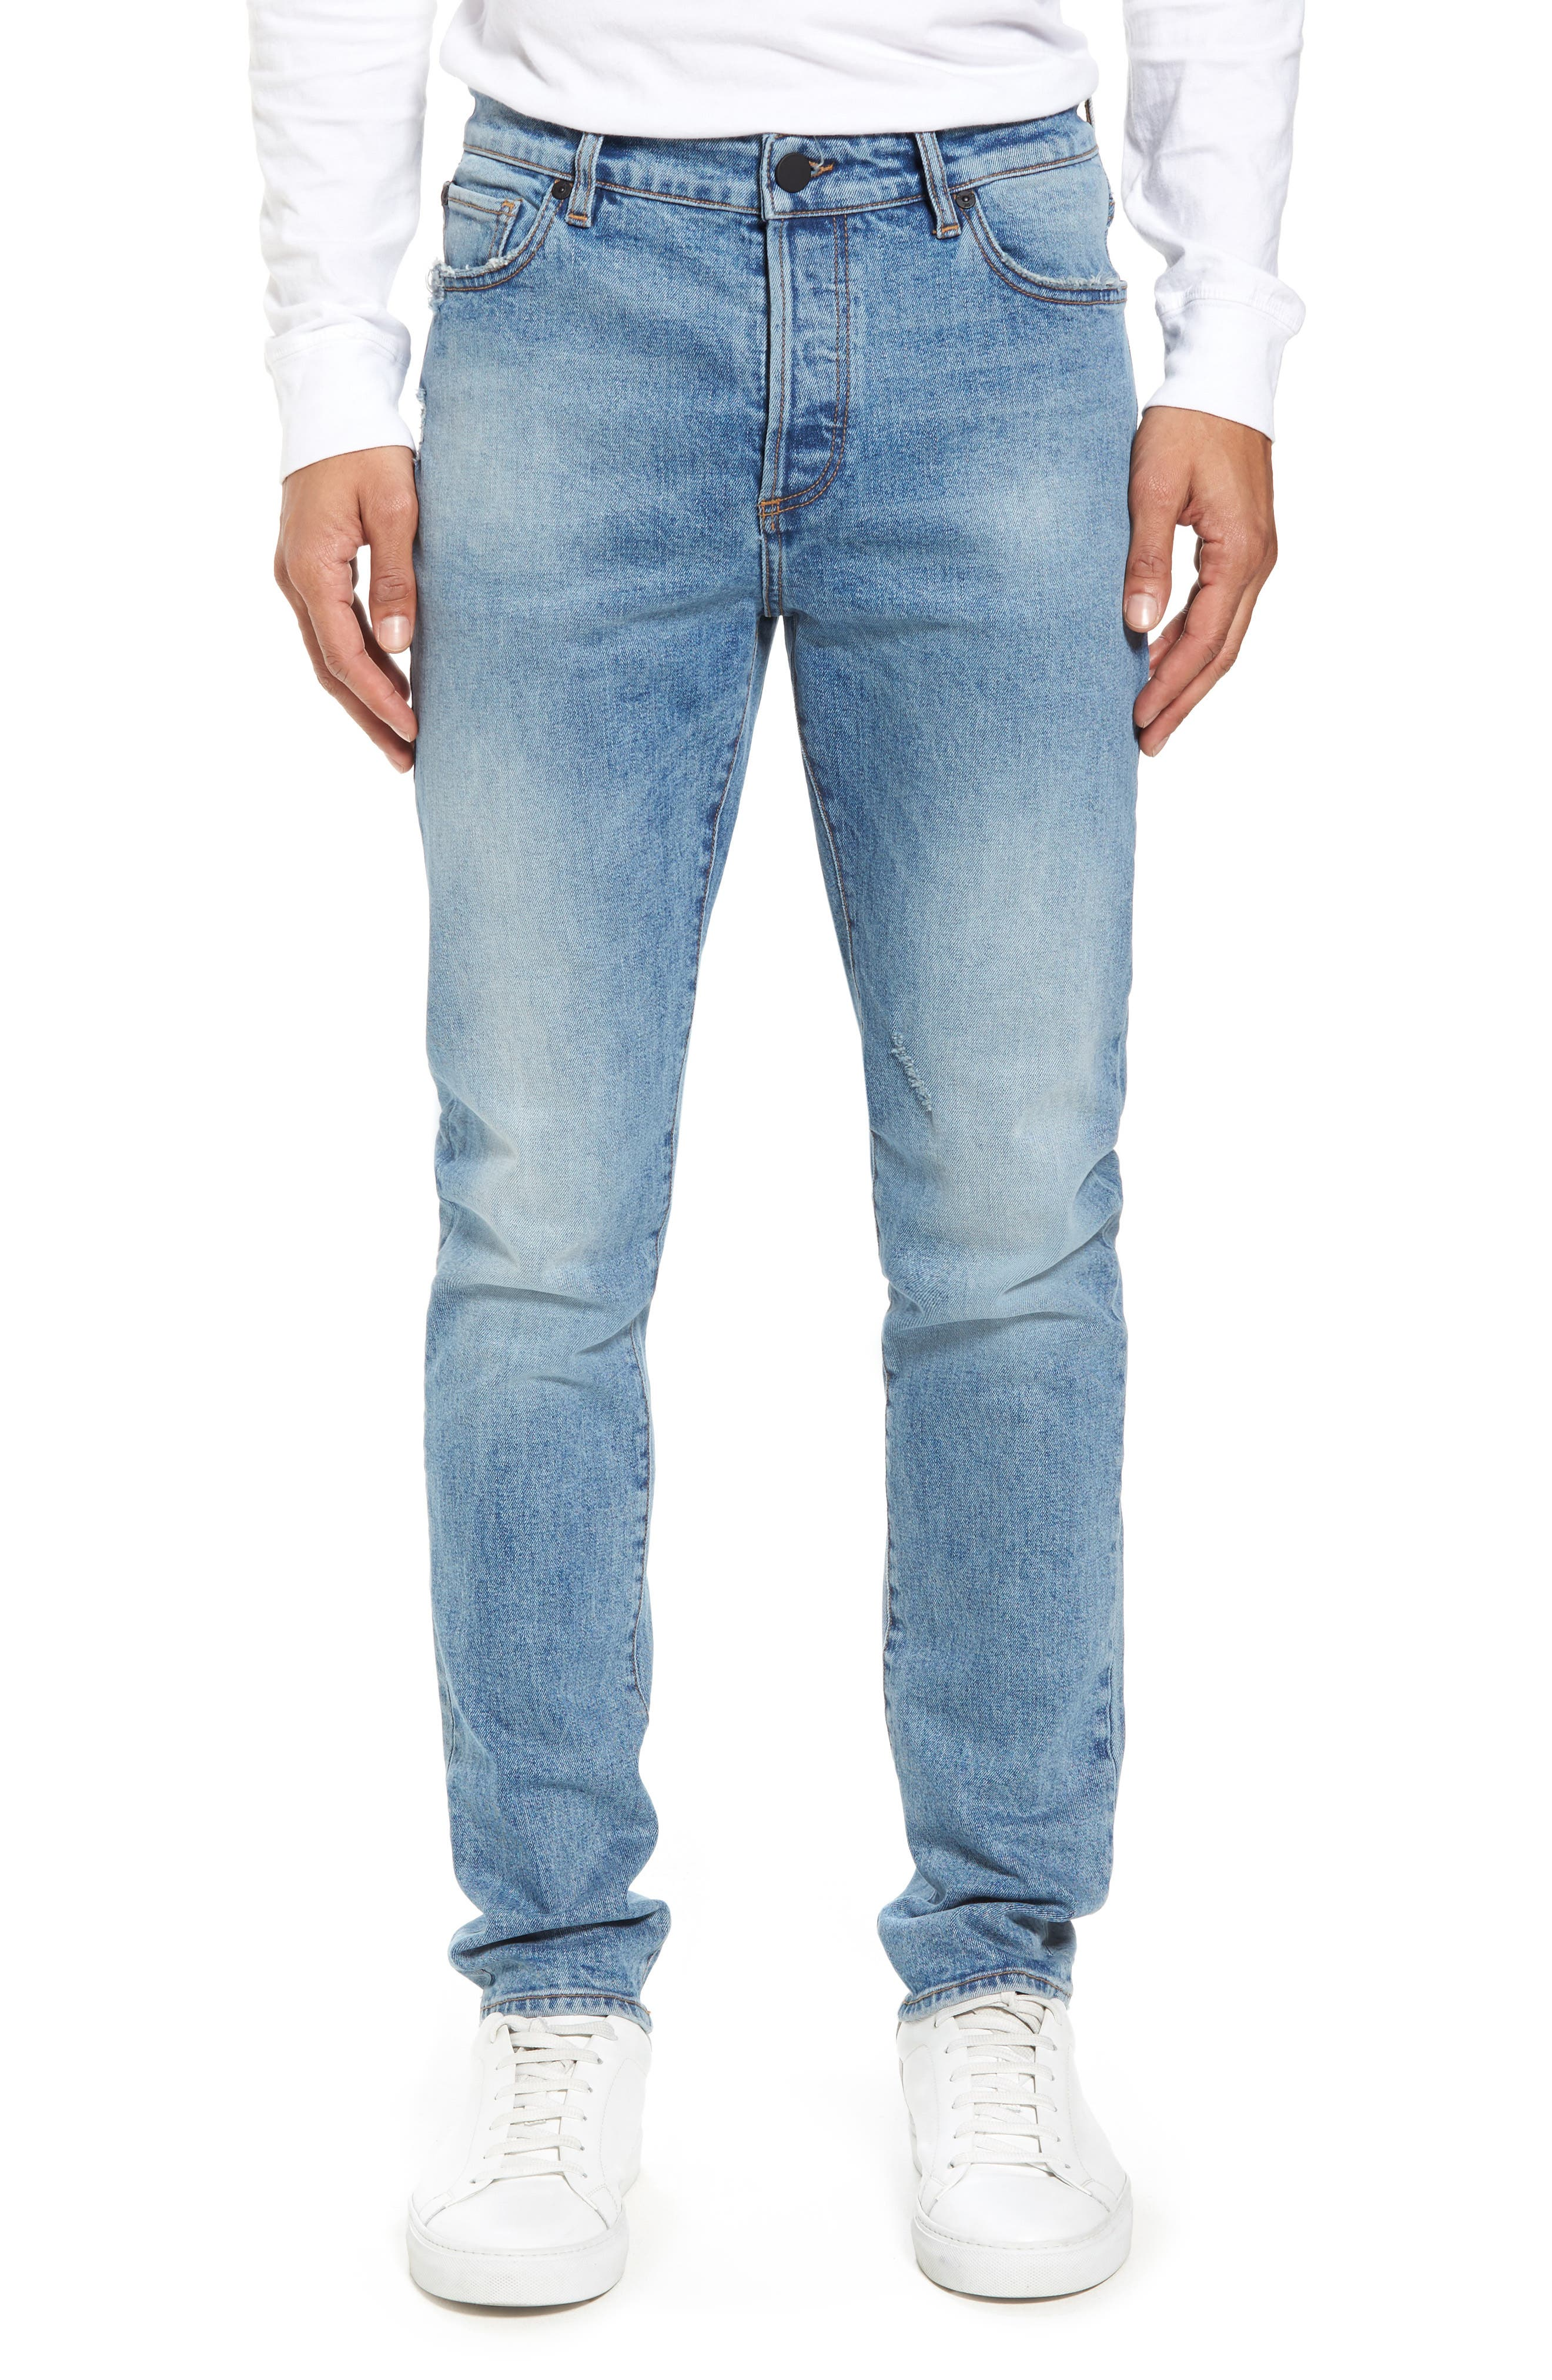 Cooper Slouchy Skinny Jeans,                             Main thumbnail 1, color,                             Breathe